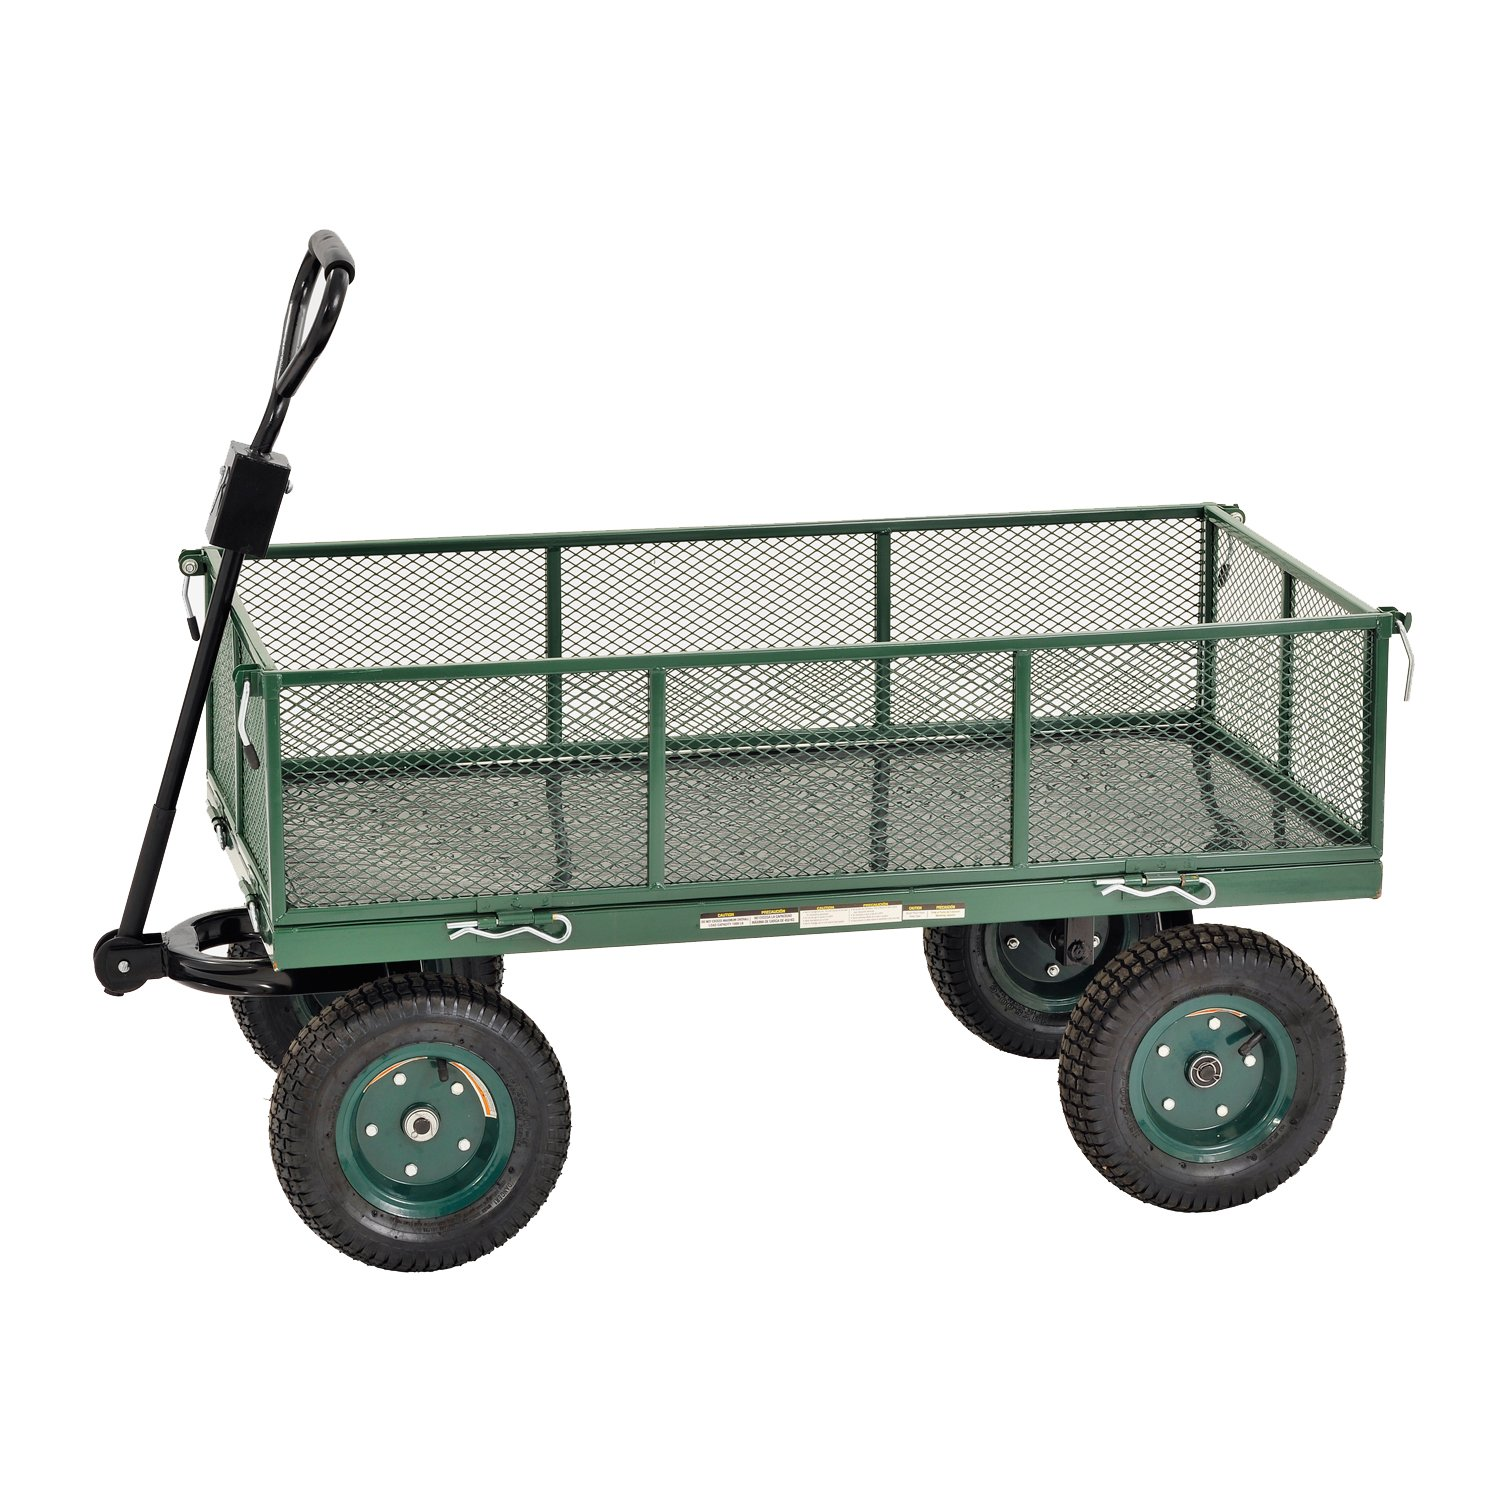 Sandusky Lee CW4824 Muscle Carts Steel Utility Garden Wagon, 1000 lb. Load Capacity, 21-3/4'' Height x 48'' Length x 24'' Width